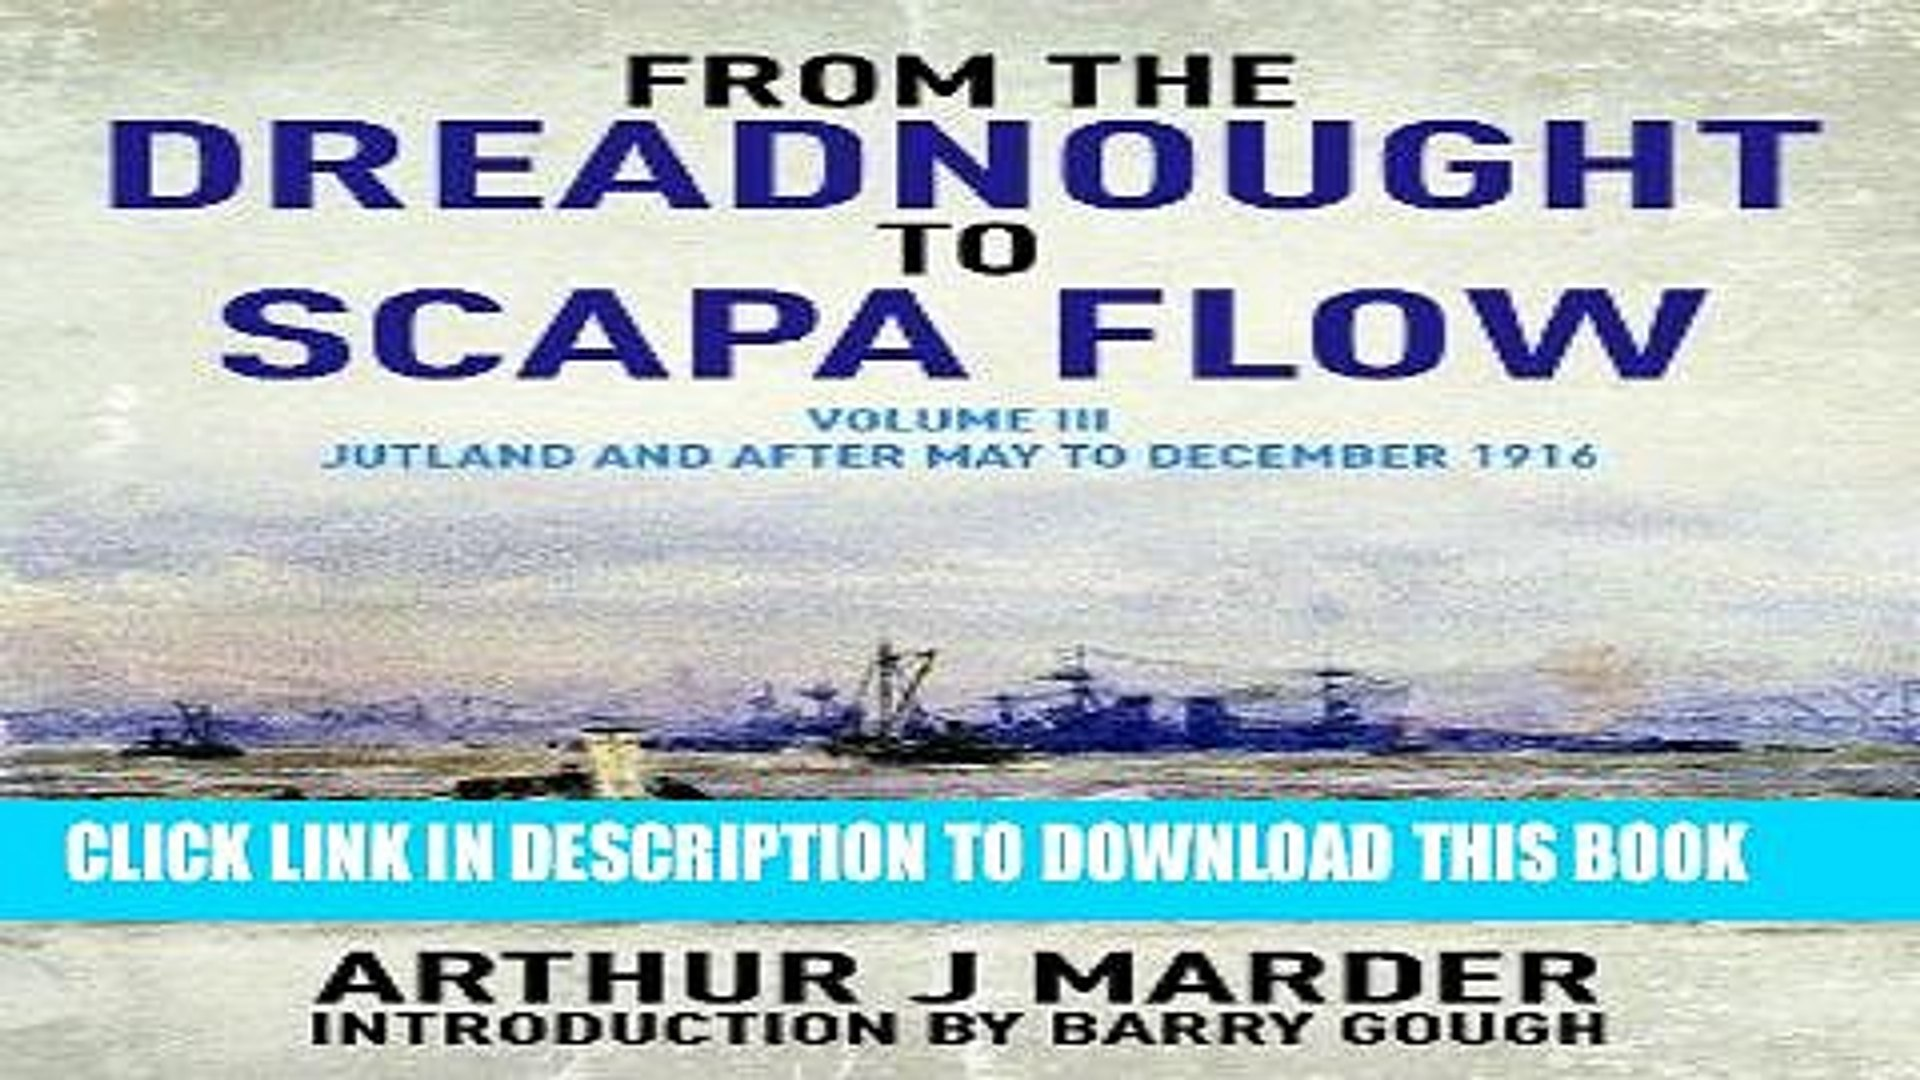 Read Now From the Dreadnought to Scapa Flow, Volume III: Jutland and After, May to December 1916